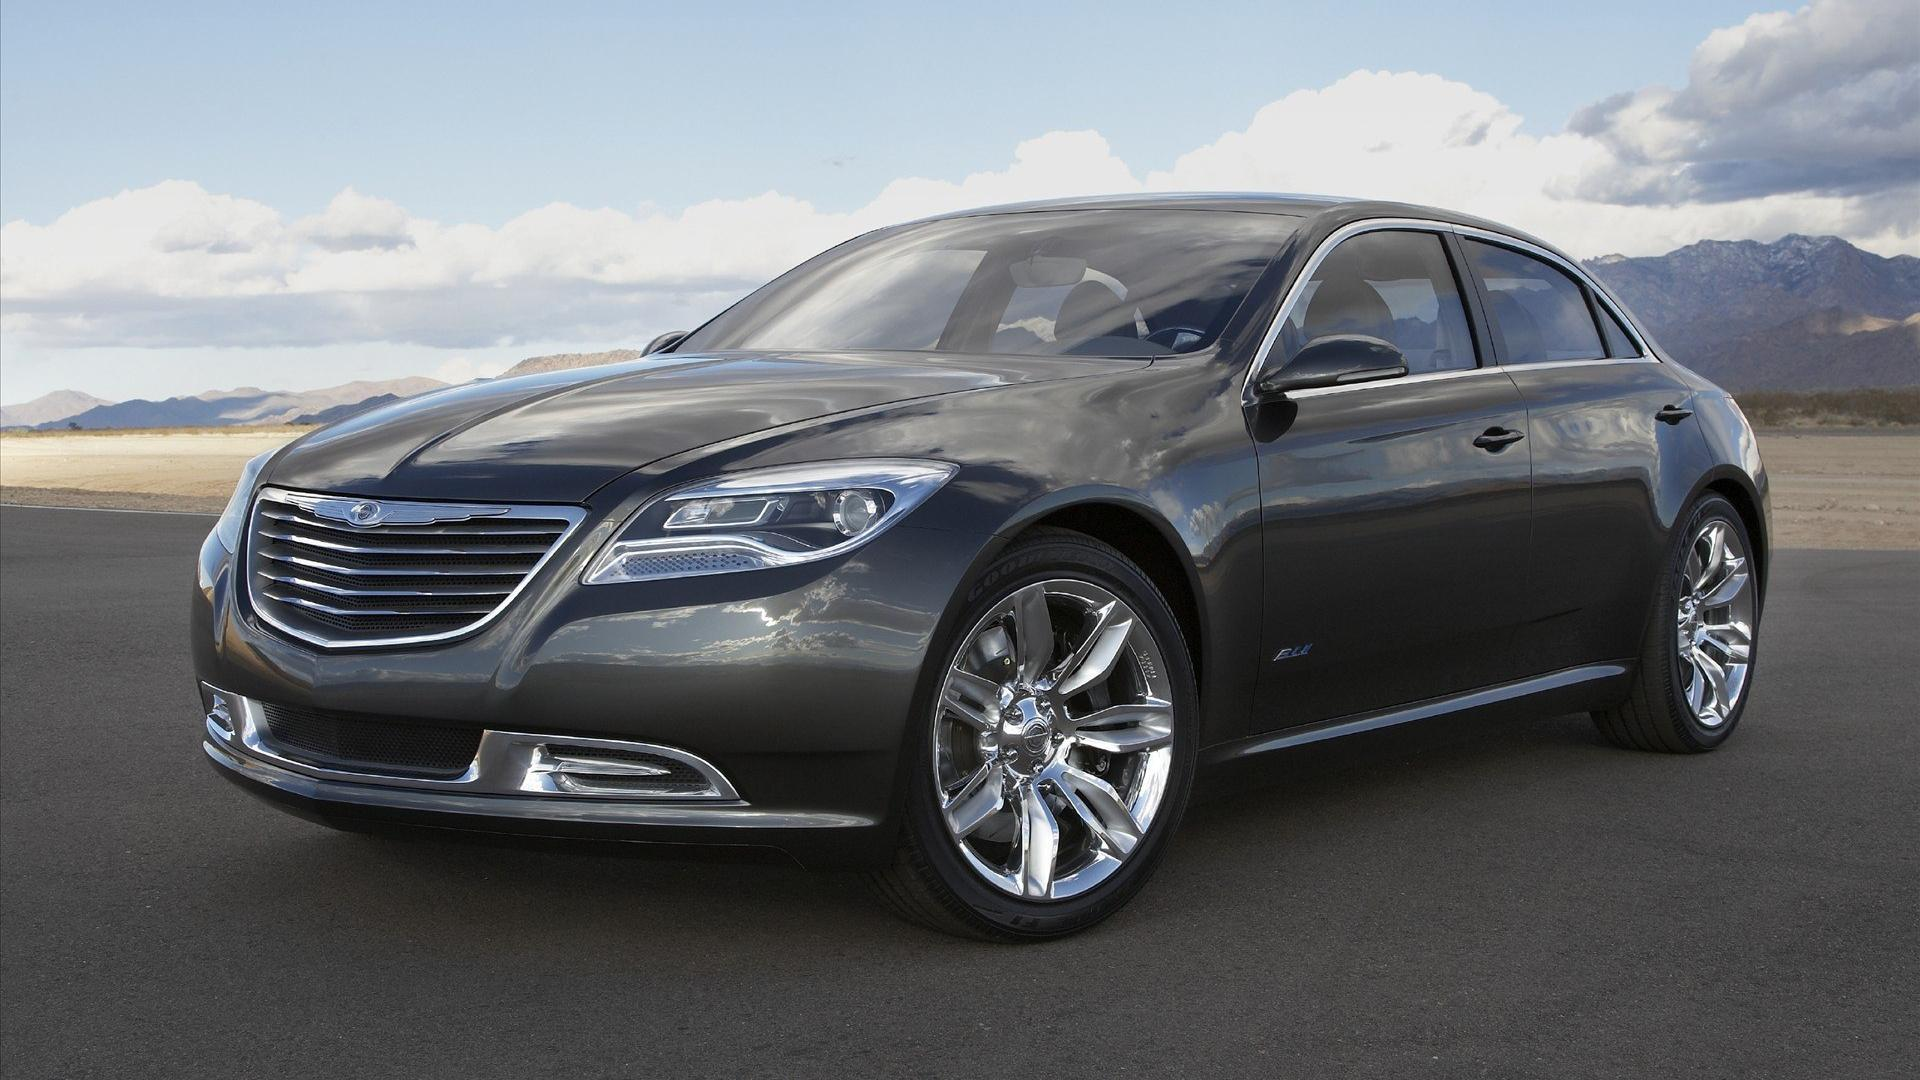 styling chrysler s edition for front special angle right promises jaw news next edward sale sedan dropping